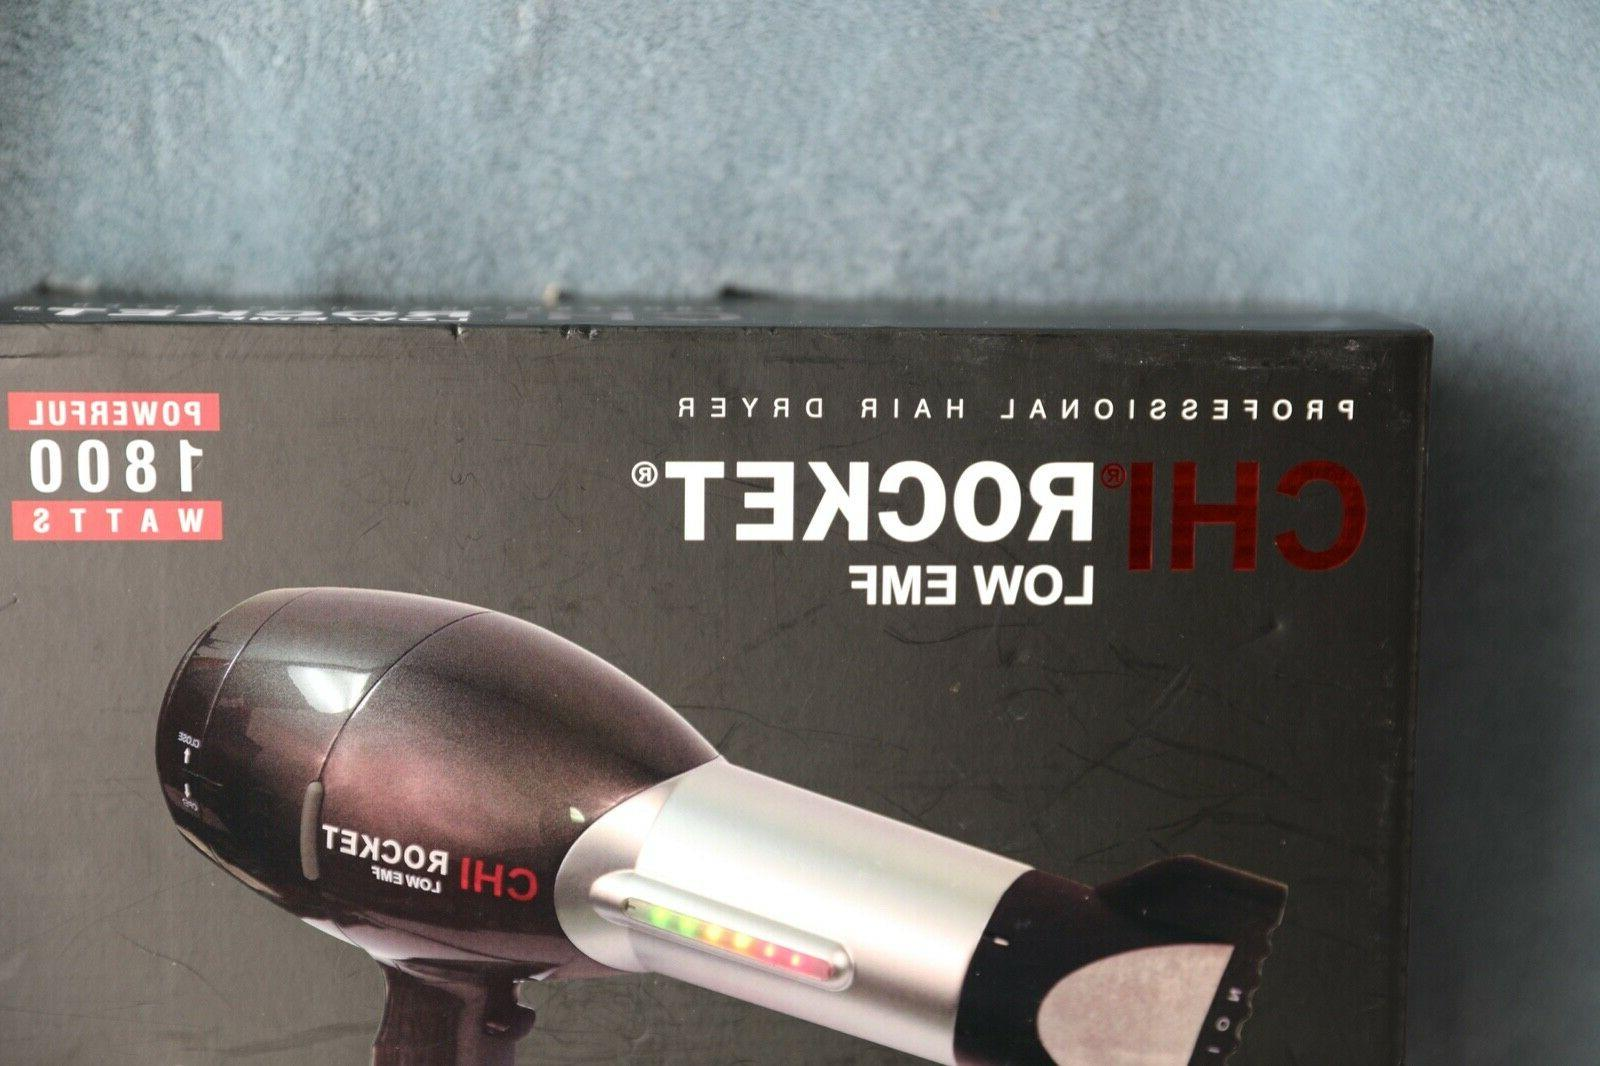 CHI Rocket Professional Dryer 1800 Watts Infrared Ionic